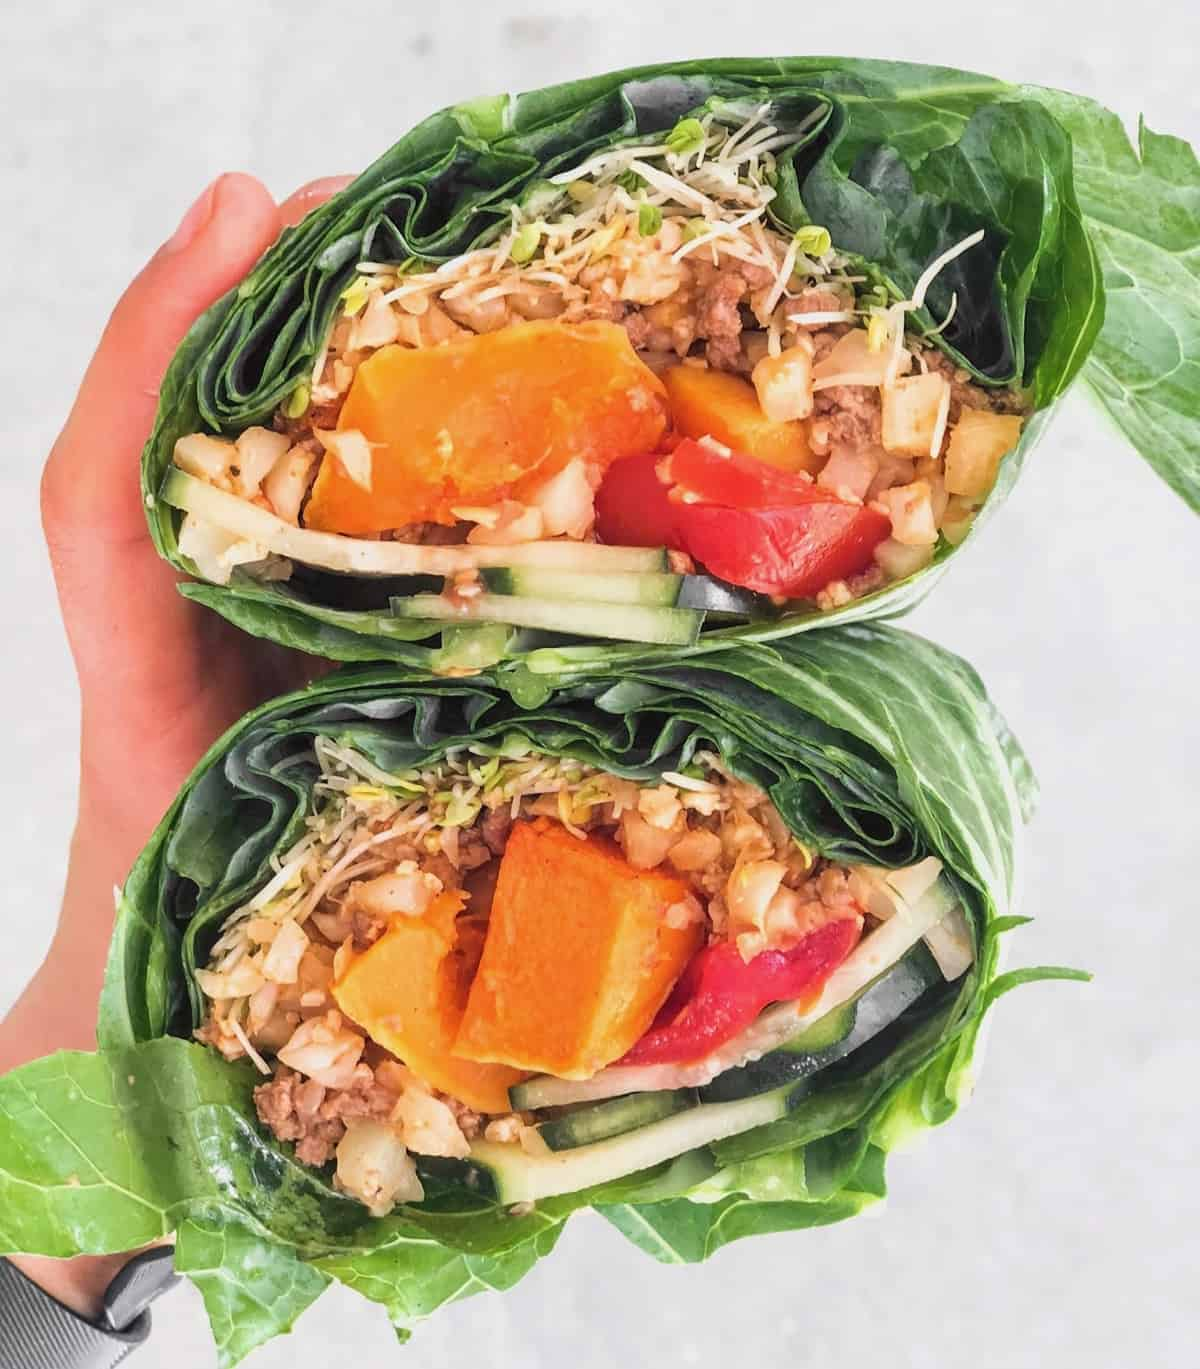 Collard wrap filled with ground beef, cauliflower rice, butternut squash, tomatoes, cucumber, and sprouts